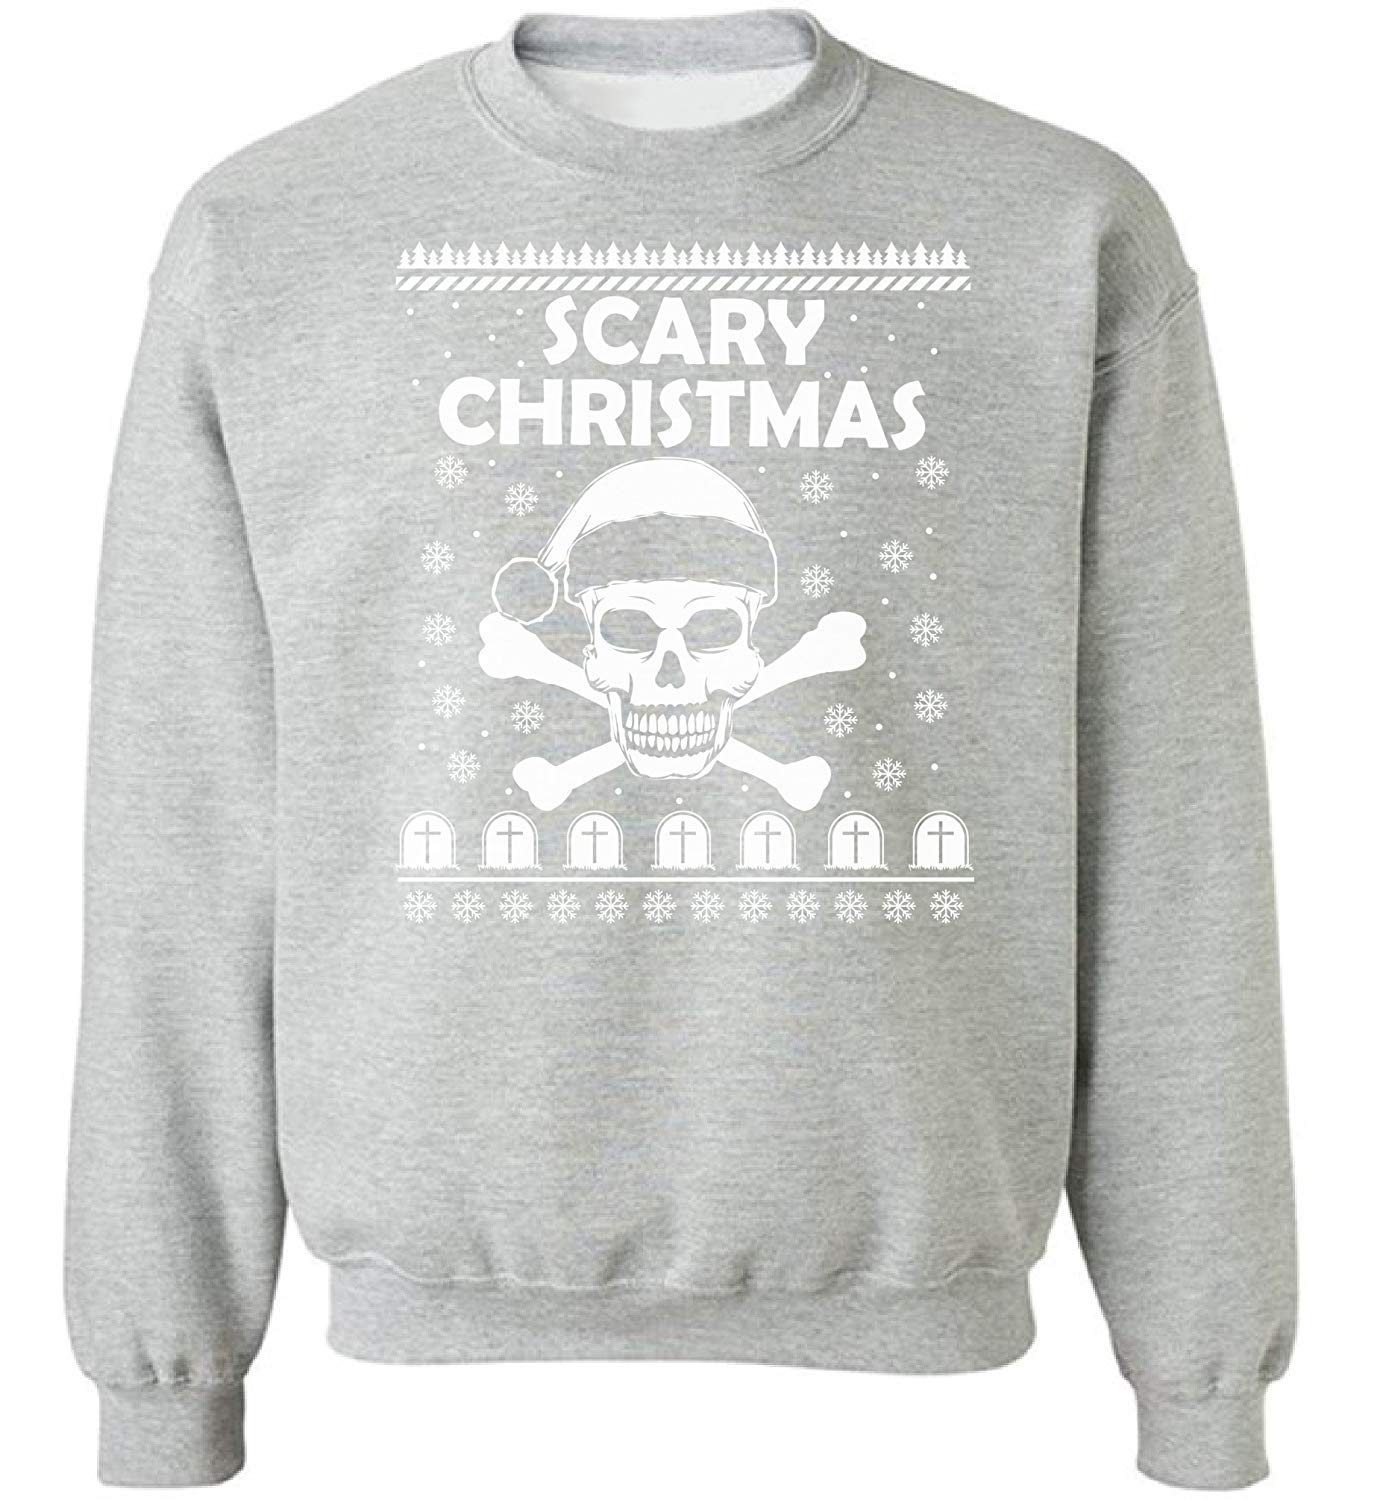 a894cc28 Get Quotations · Raxo Scary Christmas Ugly Christmas sweater Christmas  sweatshirt Scary Christmas sweater Funny Christmas Sweater Party Grey